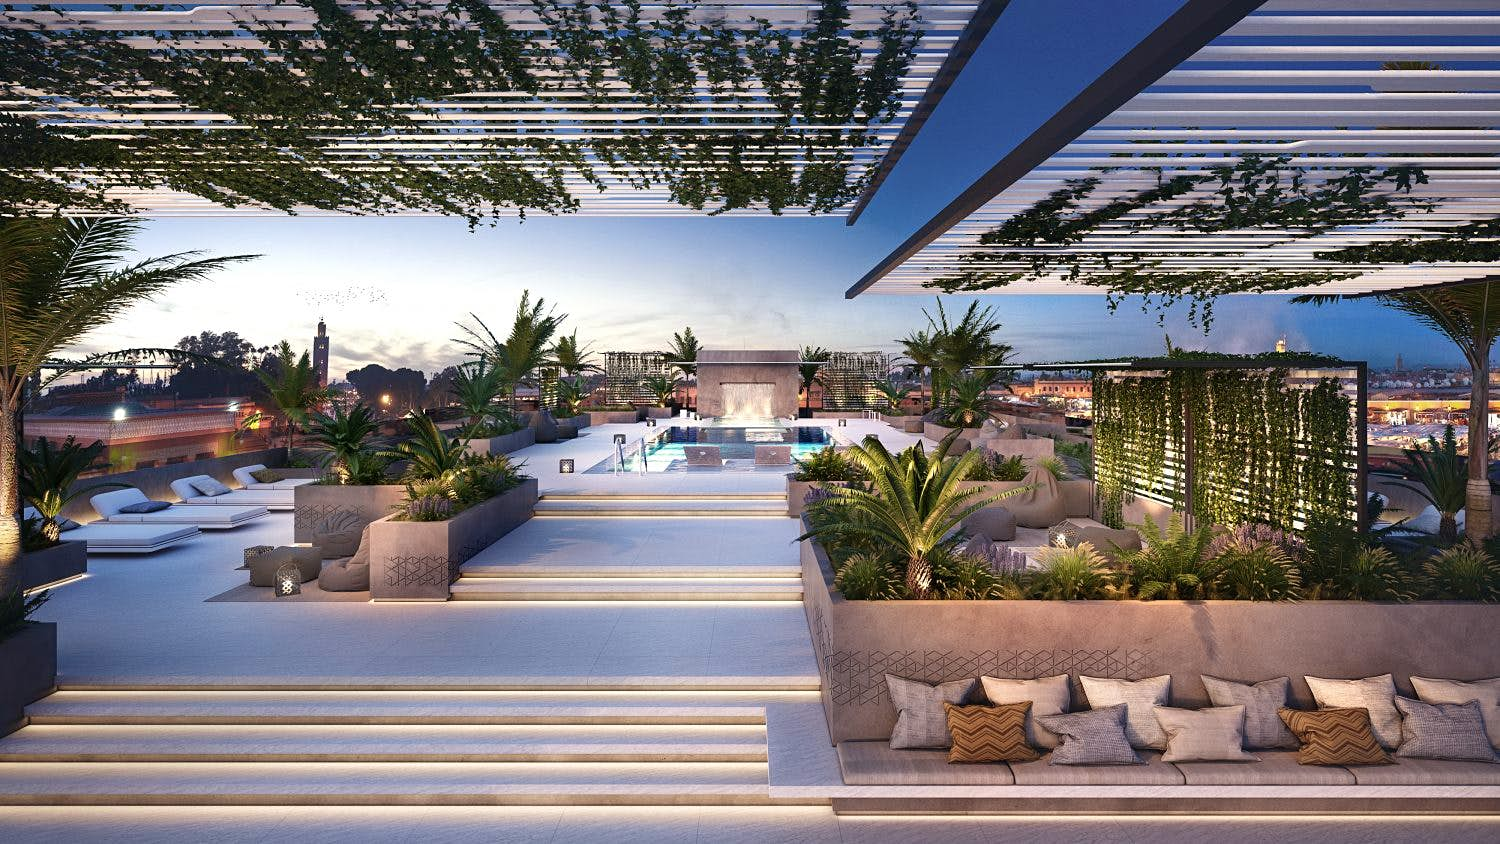 Footballer Cristiano Ronaldo To Open A Luxury Marrakesh Hotel In